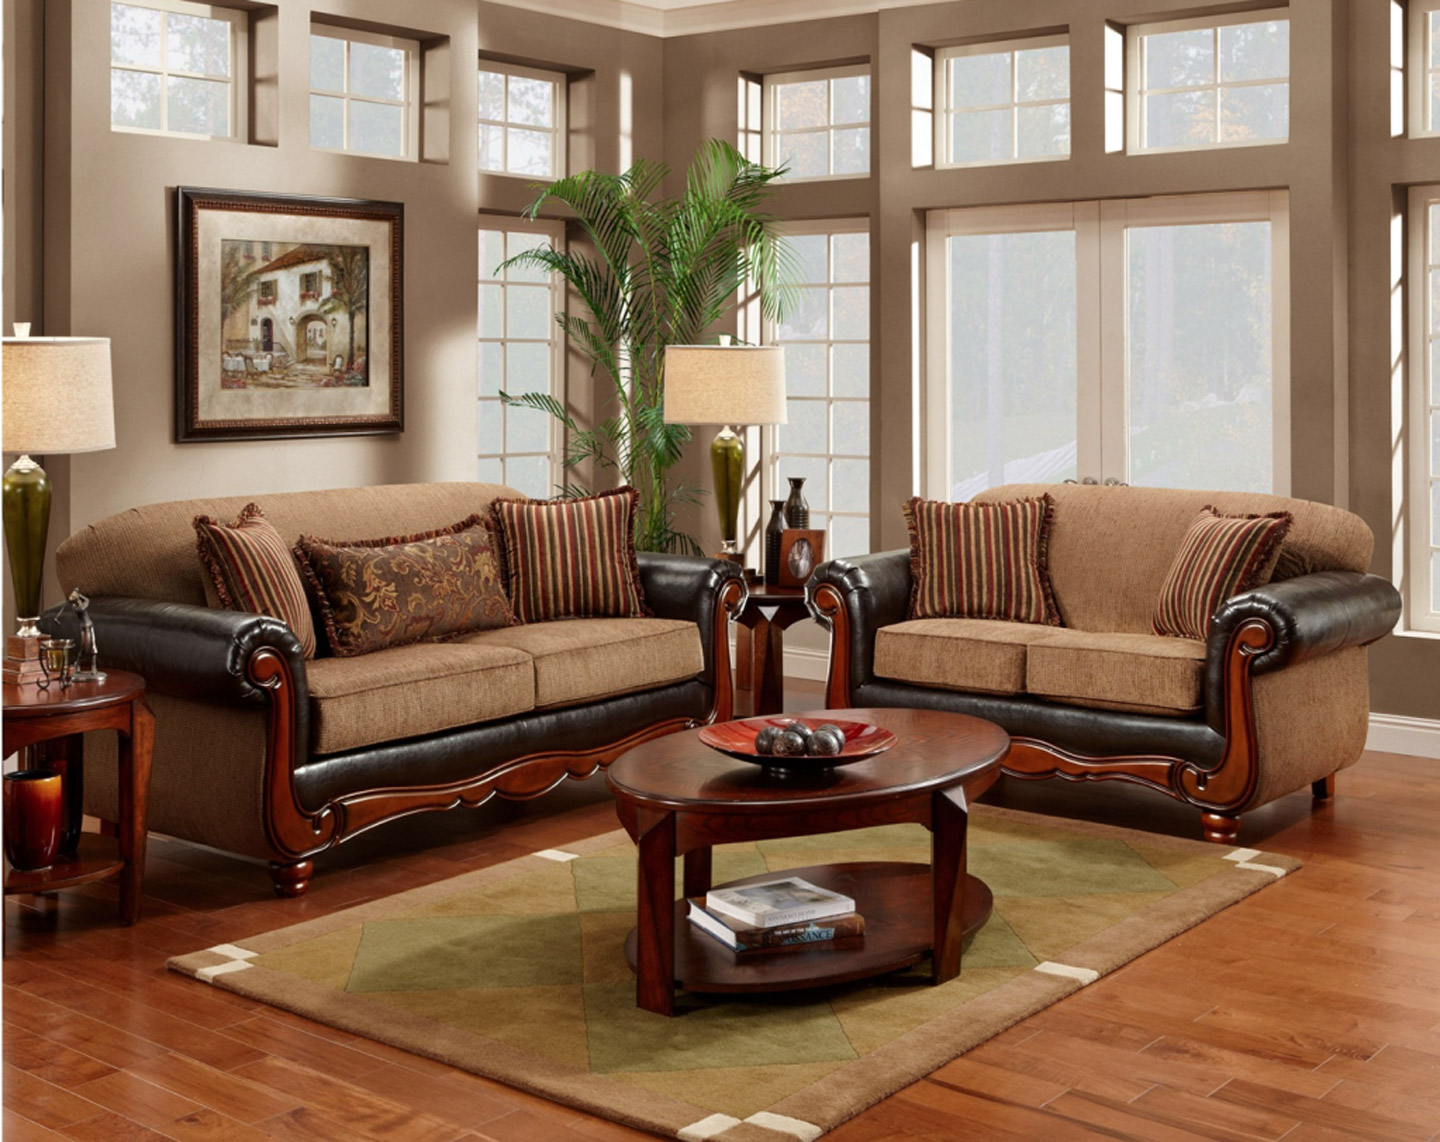 Awesome Delectable Living Room Furniture With Wood Trim Design Ideas With Natural Wood wooden sofa set designs for small living room